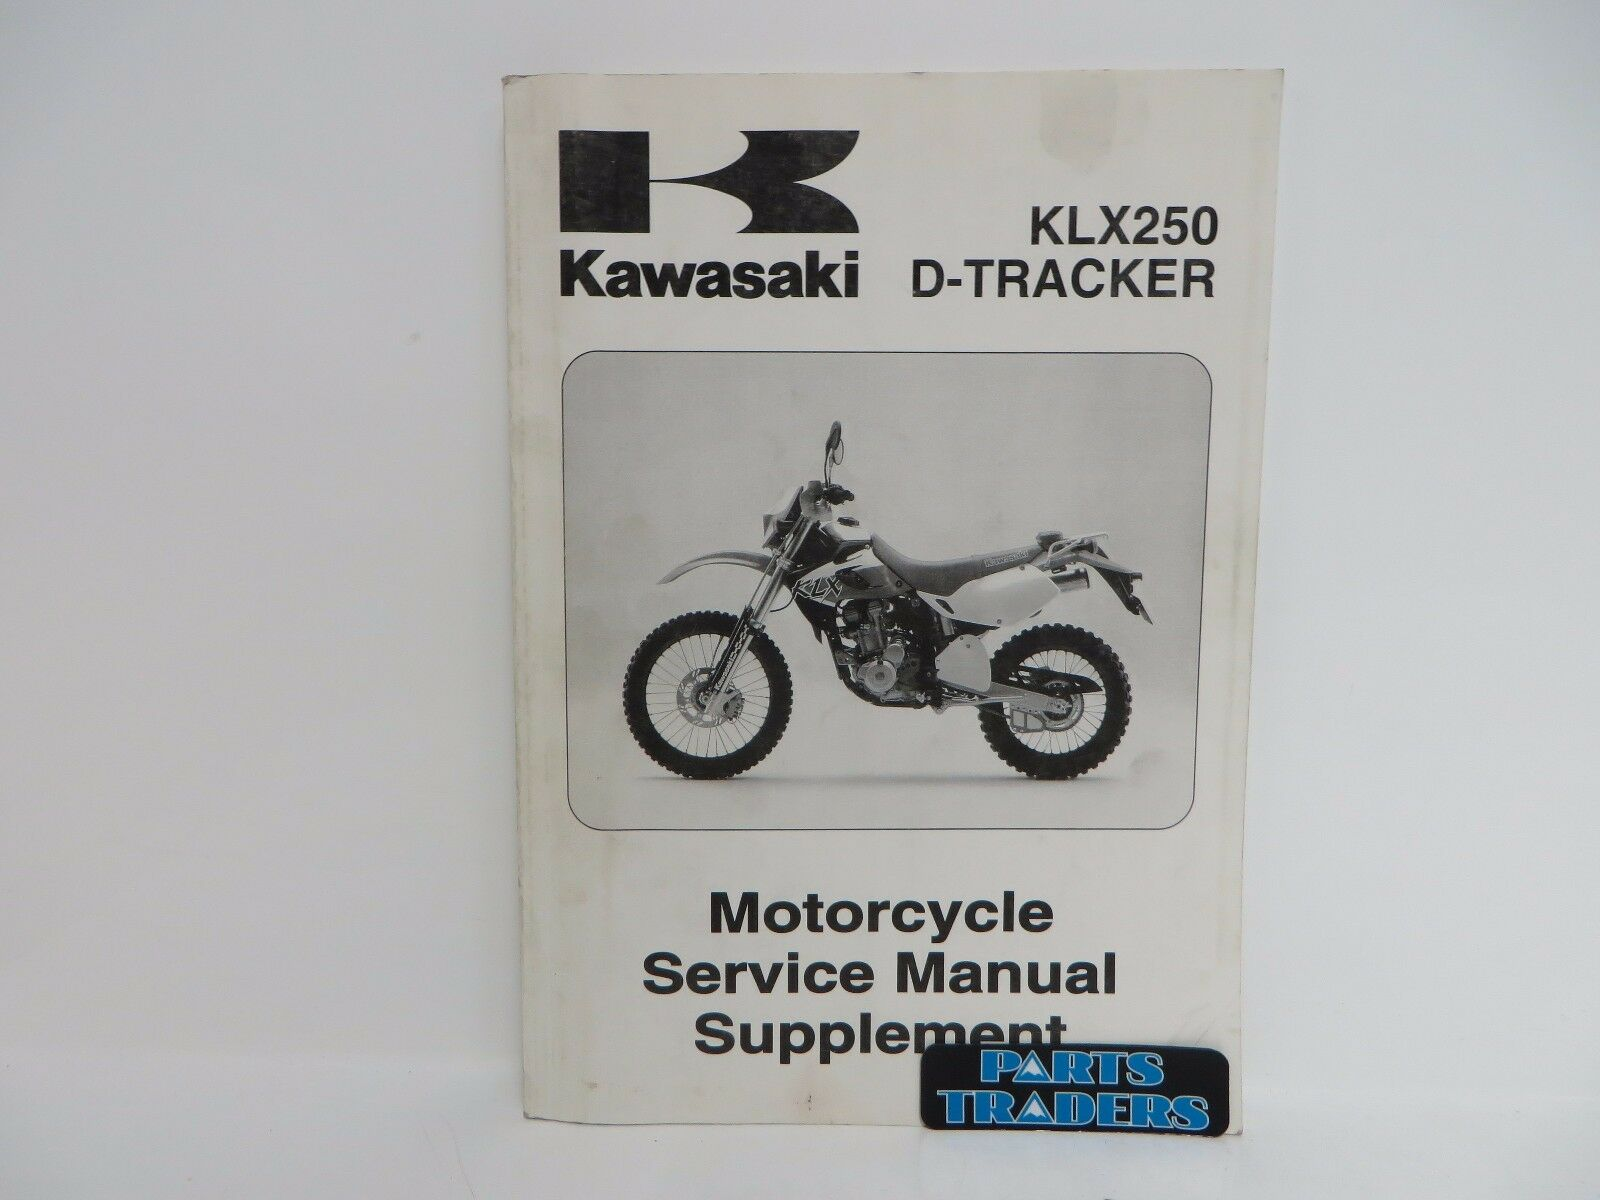 genuine kawasaki service manual supplement klx250 klx 250 d tracker rh  picclick co uk klr 250 repair manual klr 250 service manual pdf